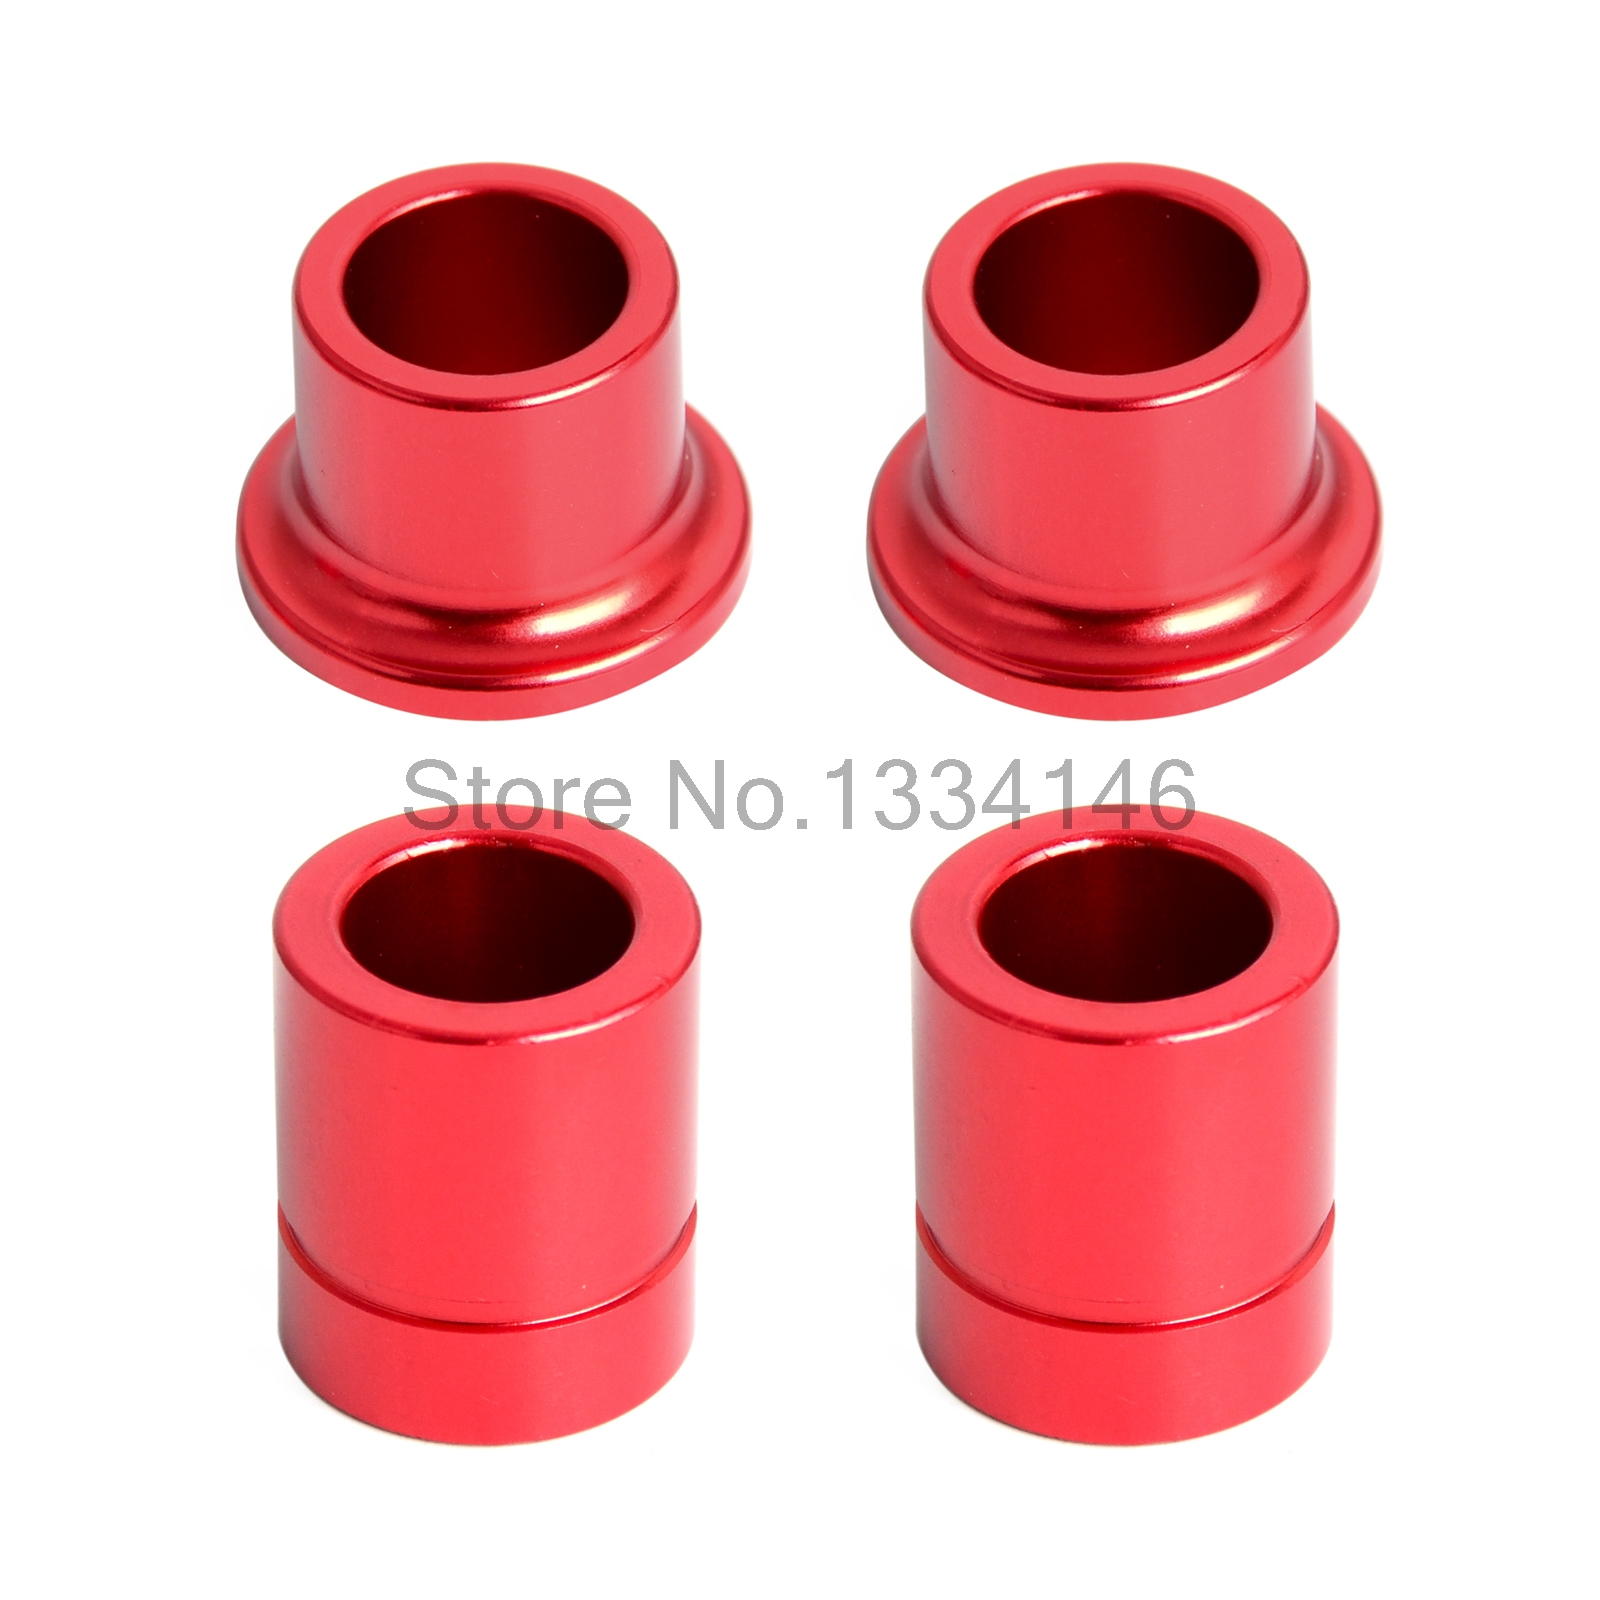 Cnc Red Front & Rear wheel hub spare kit  For Honda CRF250L CRF250M 2012-2015 2013 2014 15 Motocross Supermoto Dirt Bike